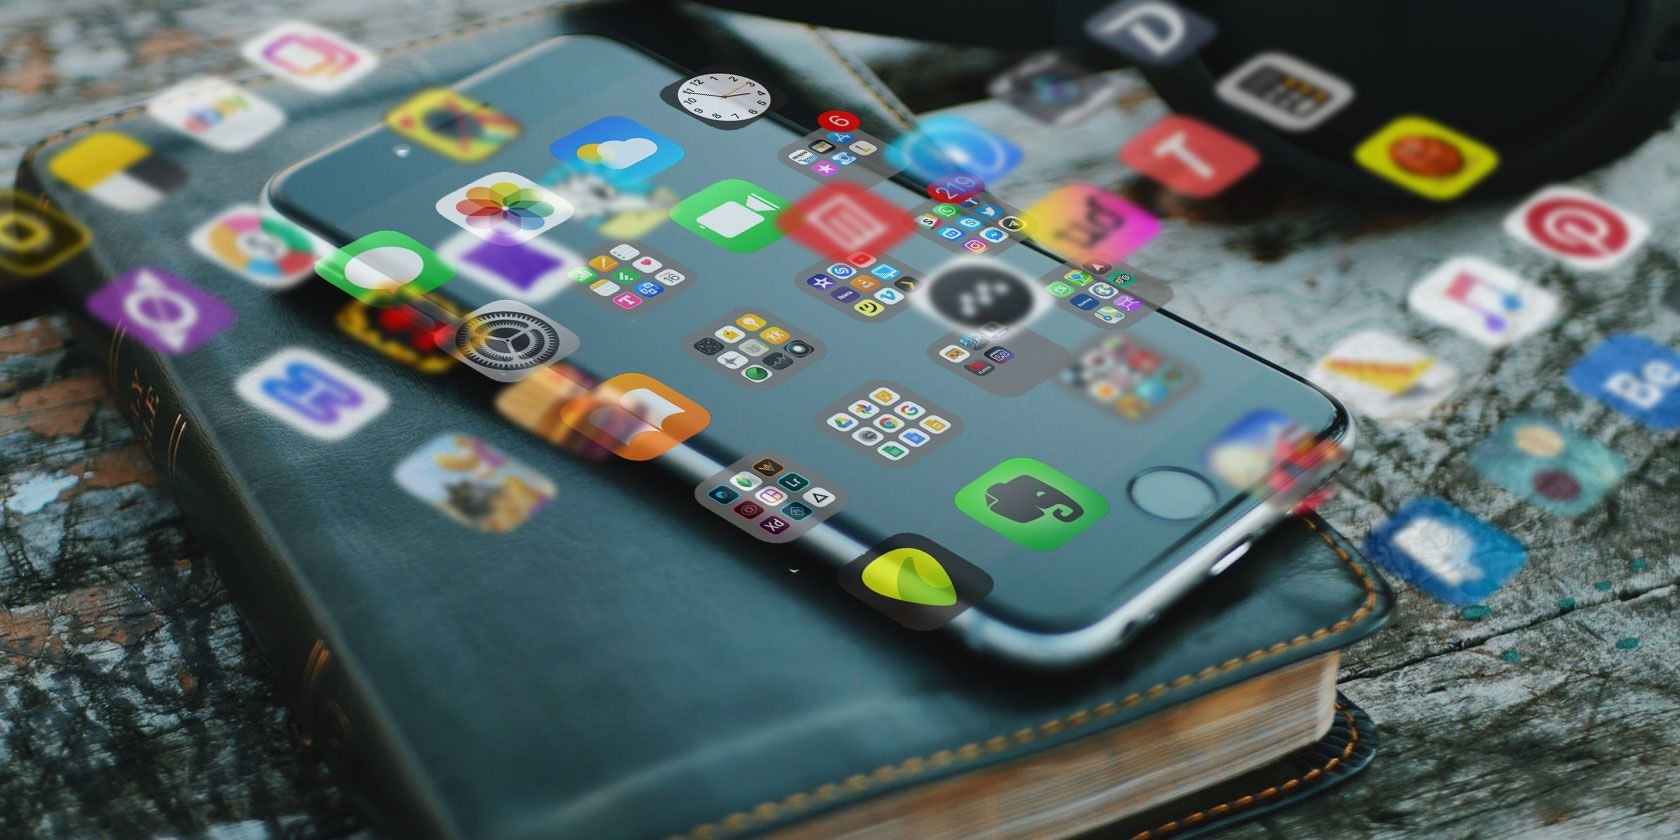 How to Add Website Shortcuts to the iPhone Home Screen